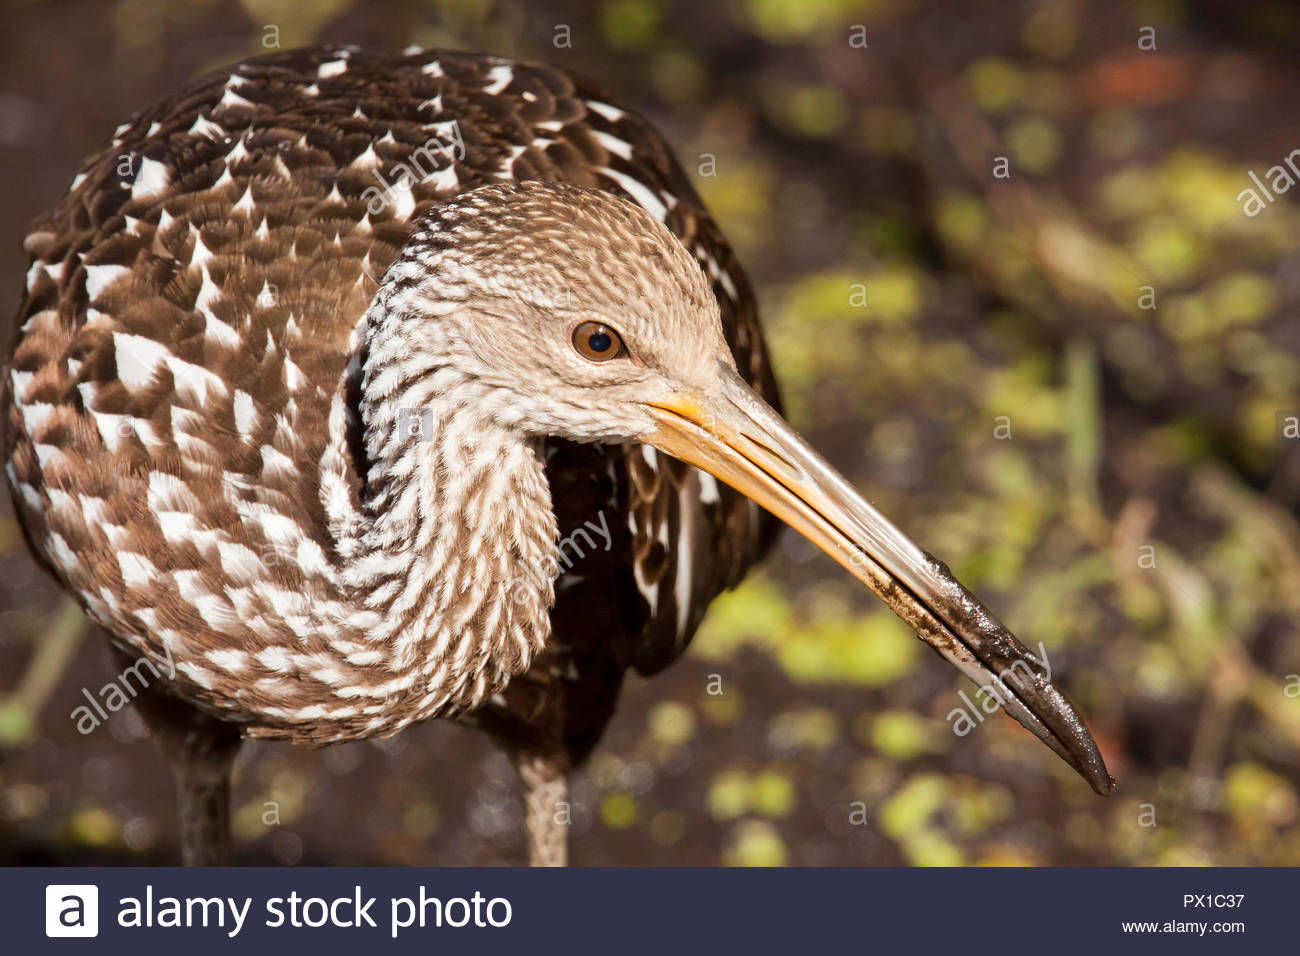 Limpkin in Florida park approaches extremely close. - Stock Image